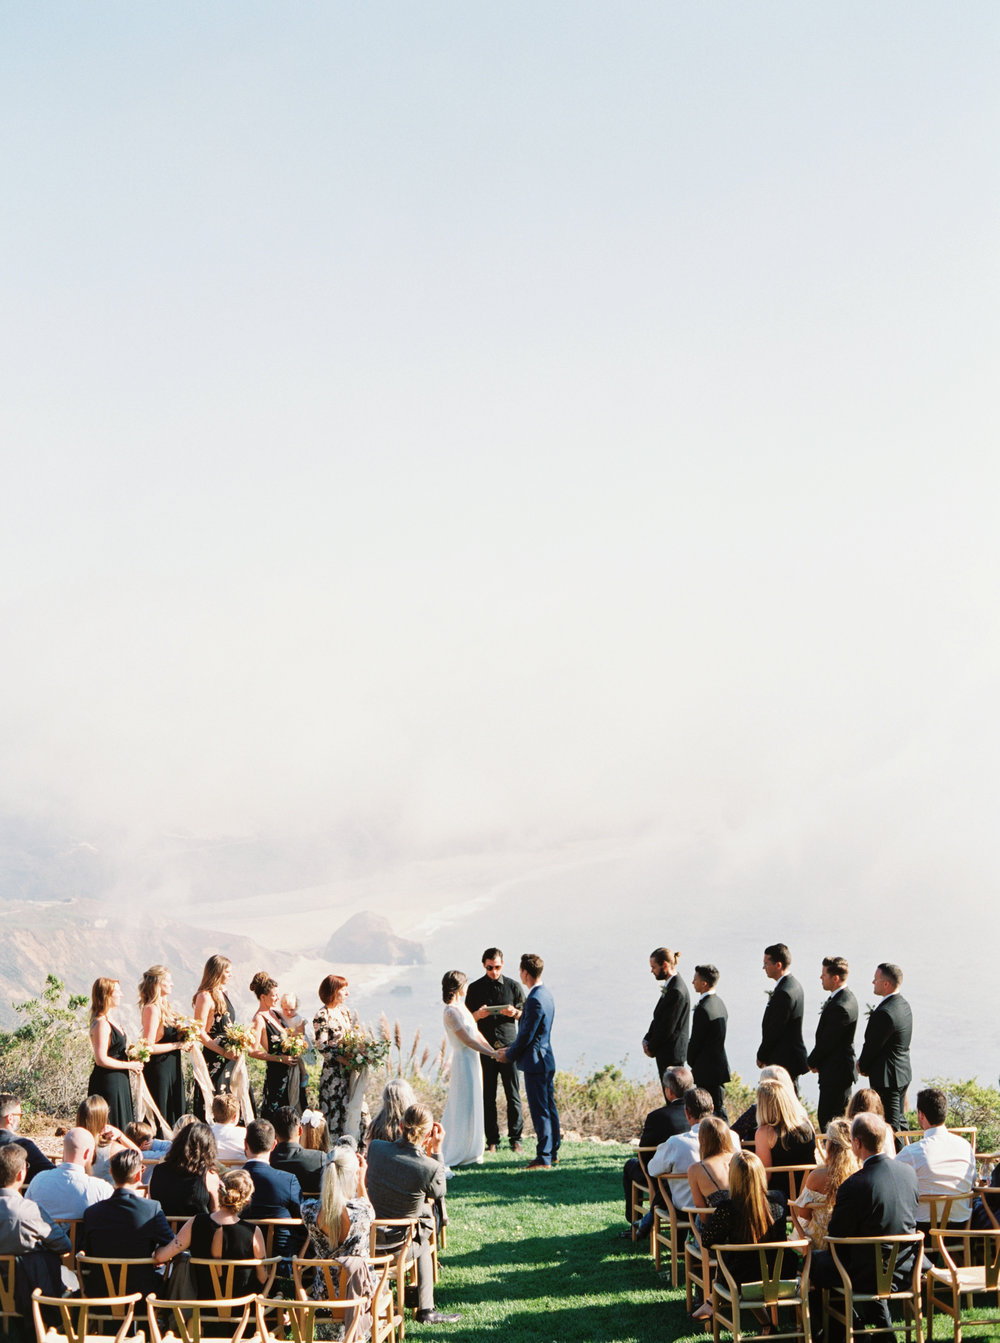 12th-Table-BIG-SUR-WEDDING-Erich-McVey-5